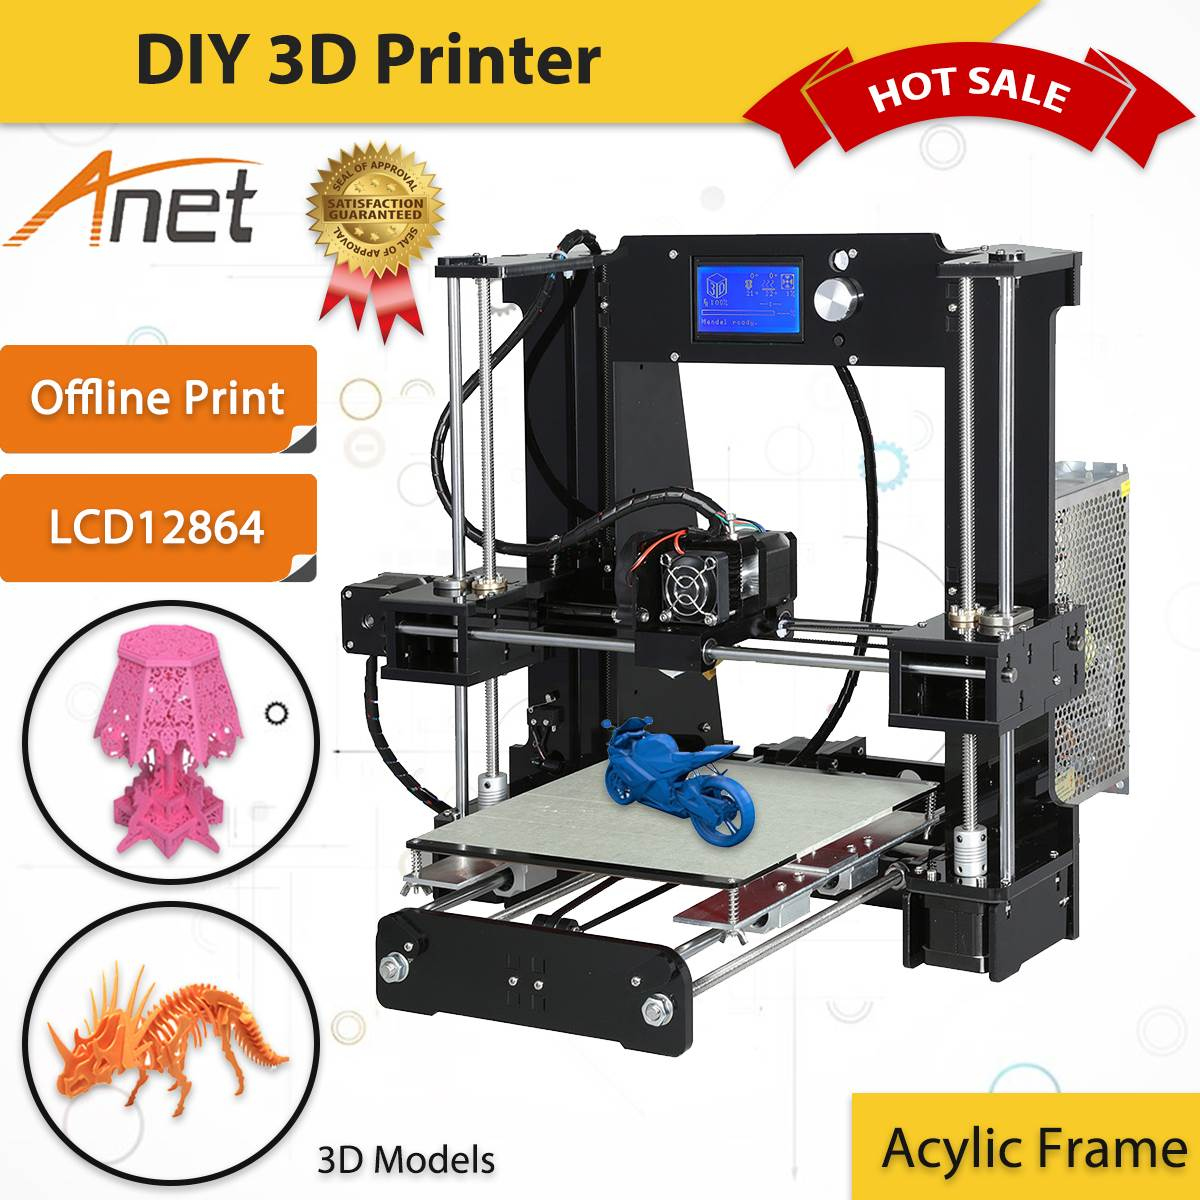 Anet A6 3D Printing Kit 3D Printer Acrylic Frame Offline Print LCD 12864 Screen With 8GB SD Card цена 2017